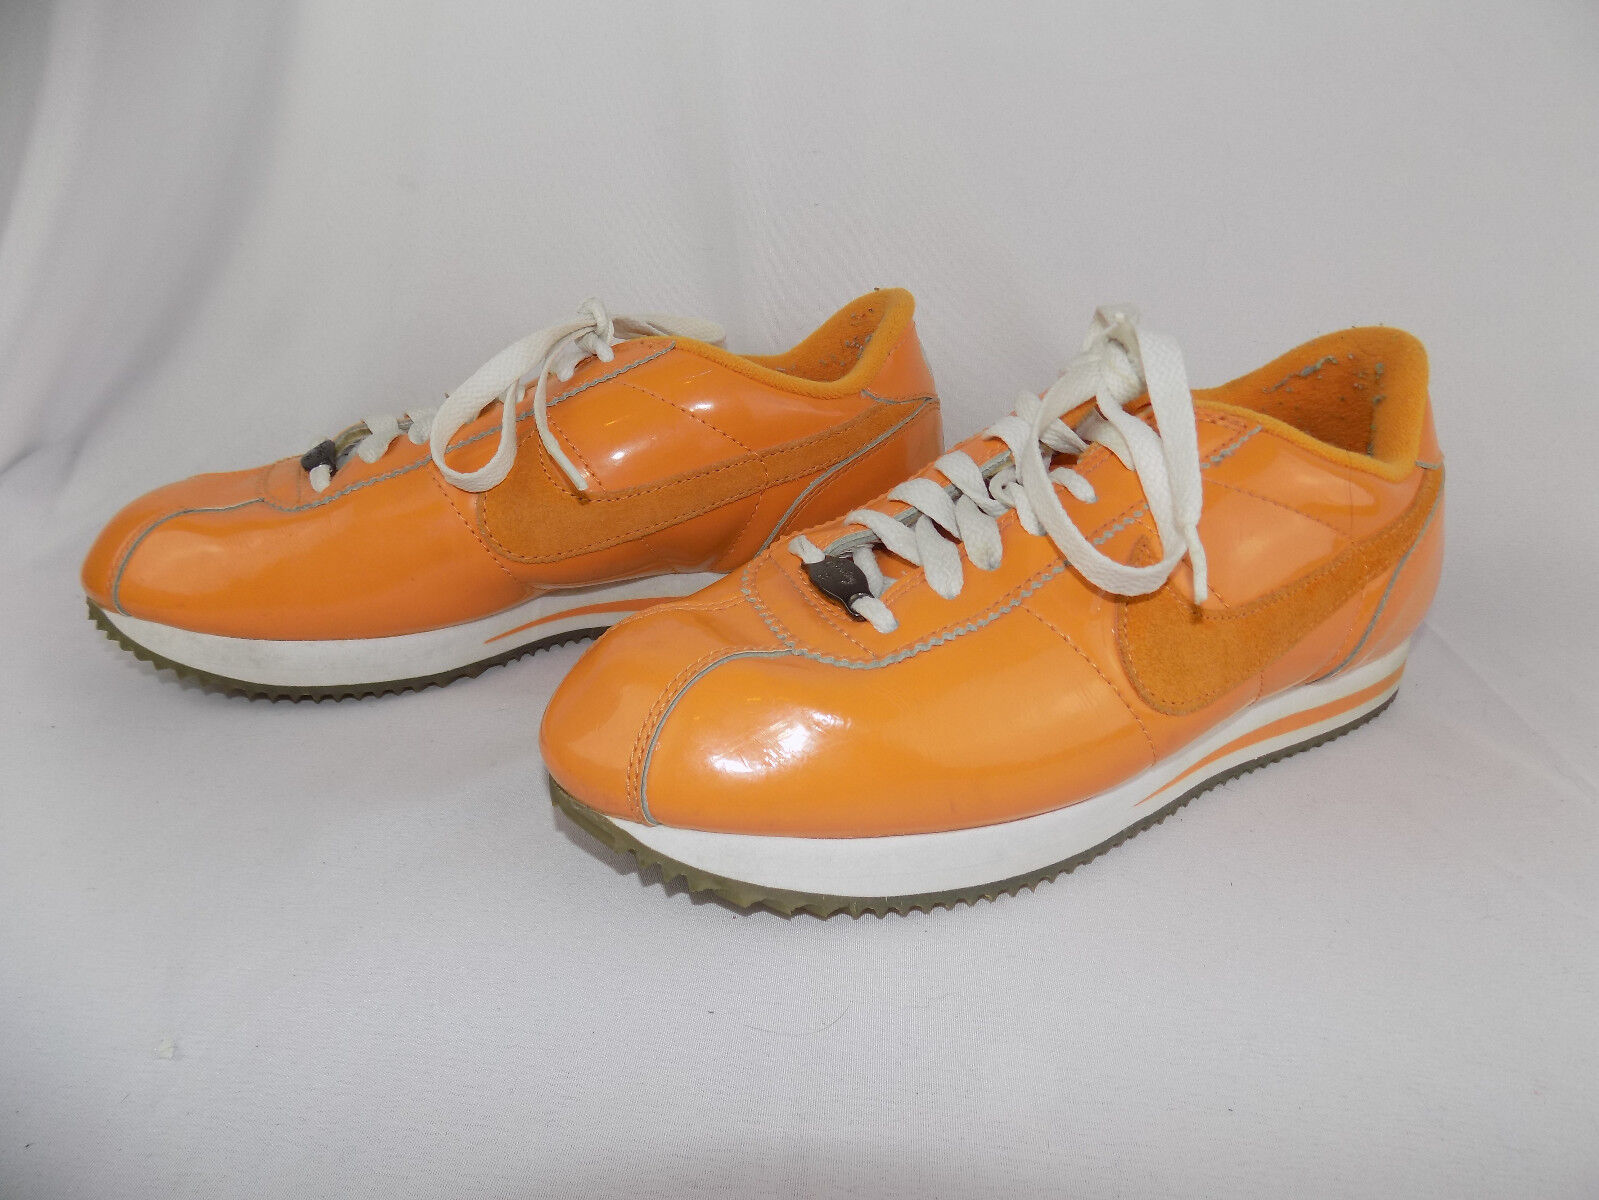 Femme NIKE CORTEZ CLASSIC Chaussures ORANGE 010406 Taille 8